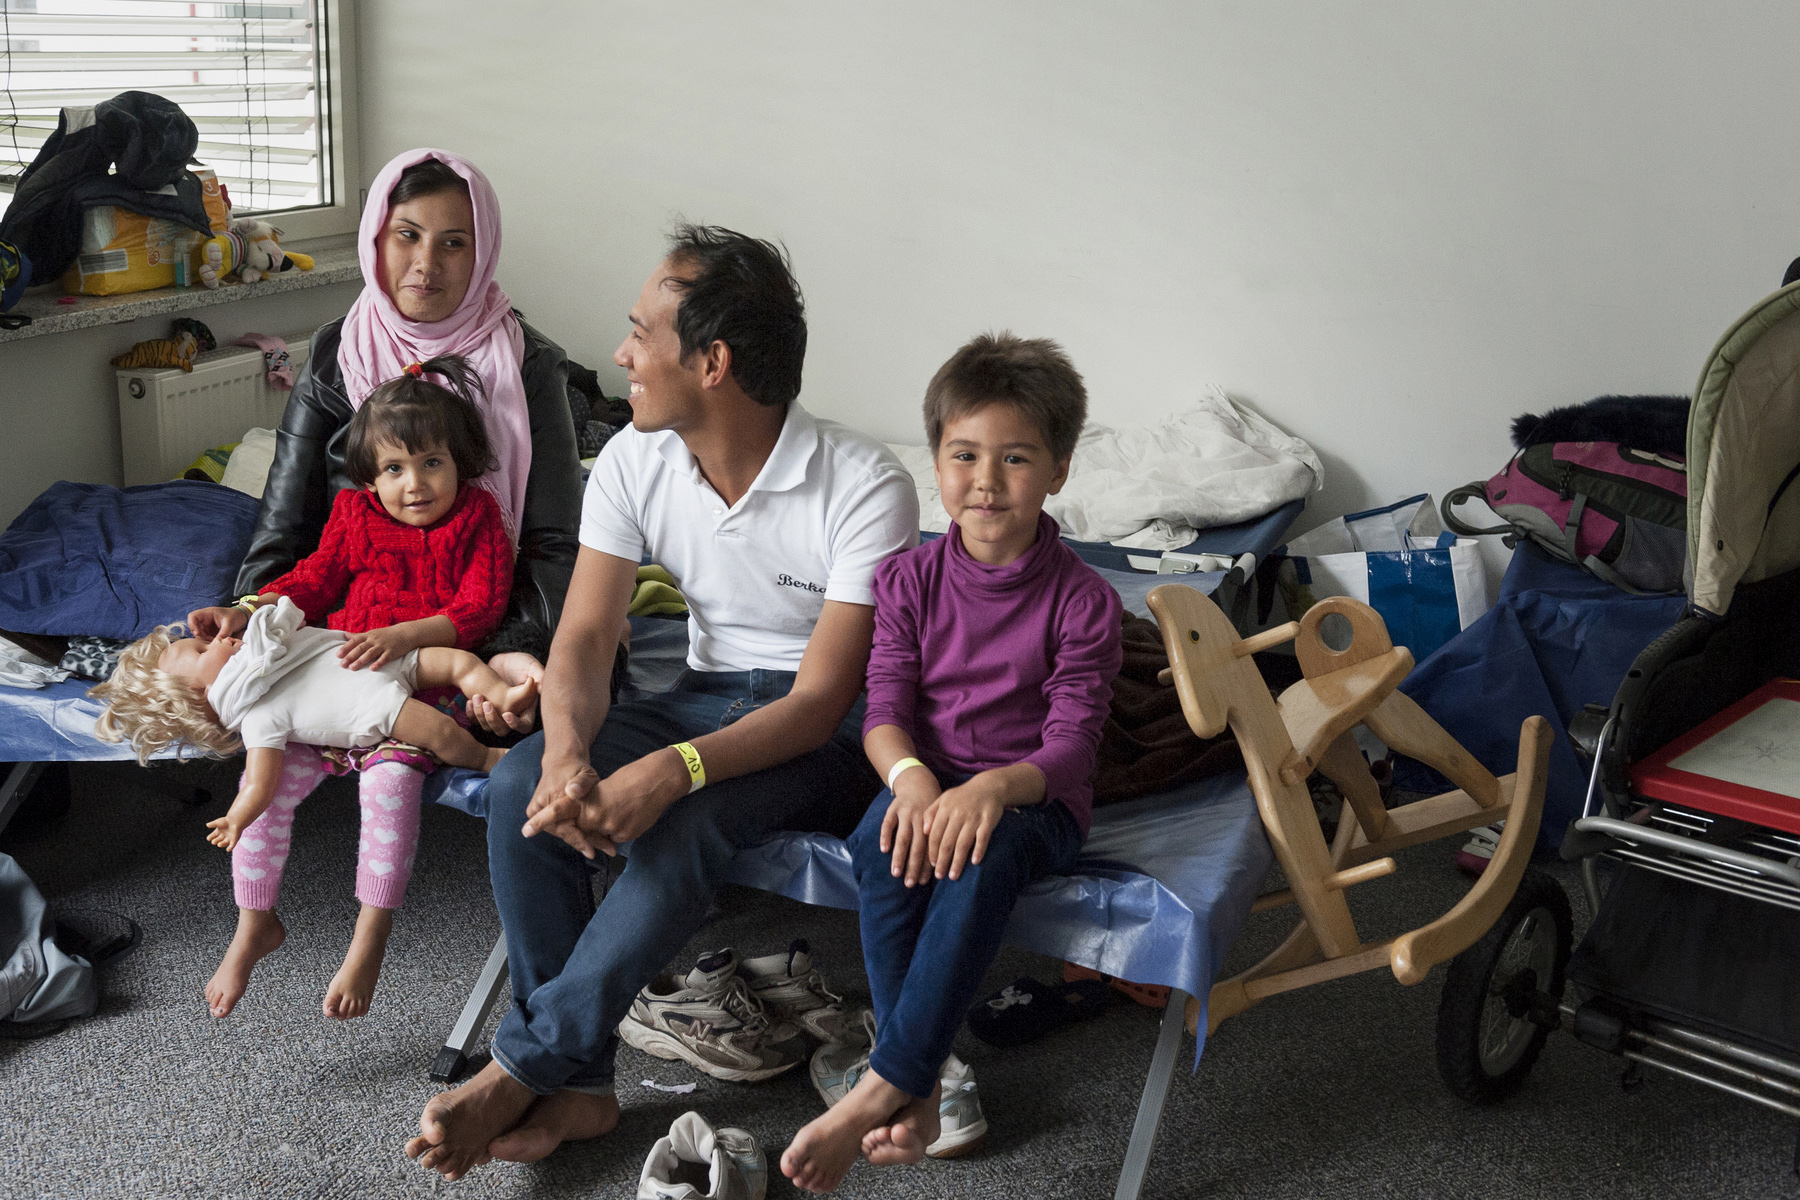 A refugee family in France